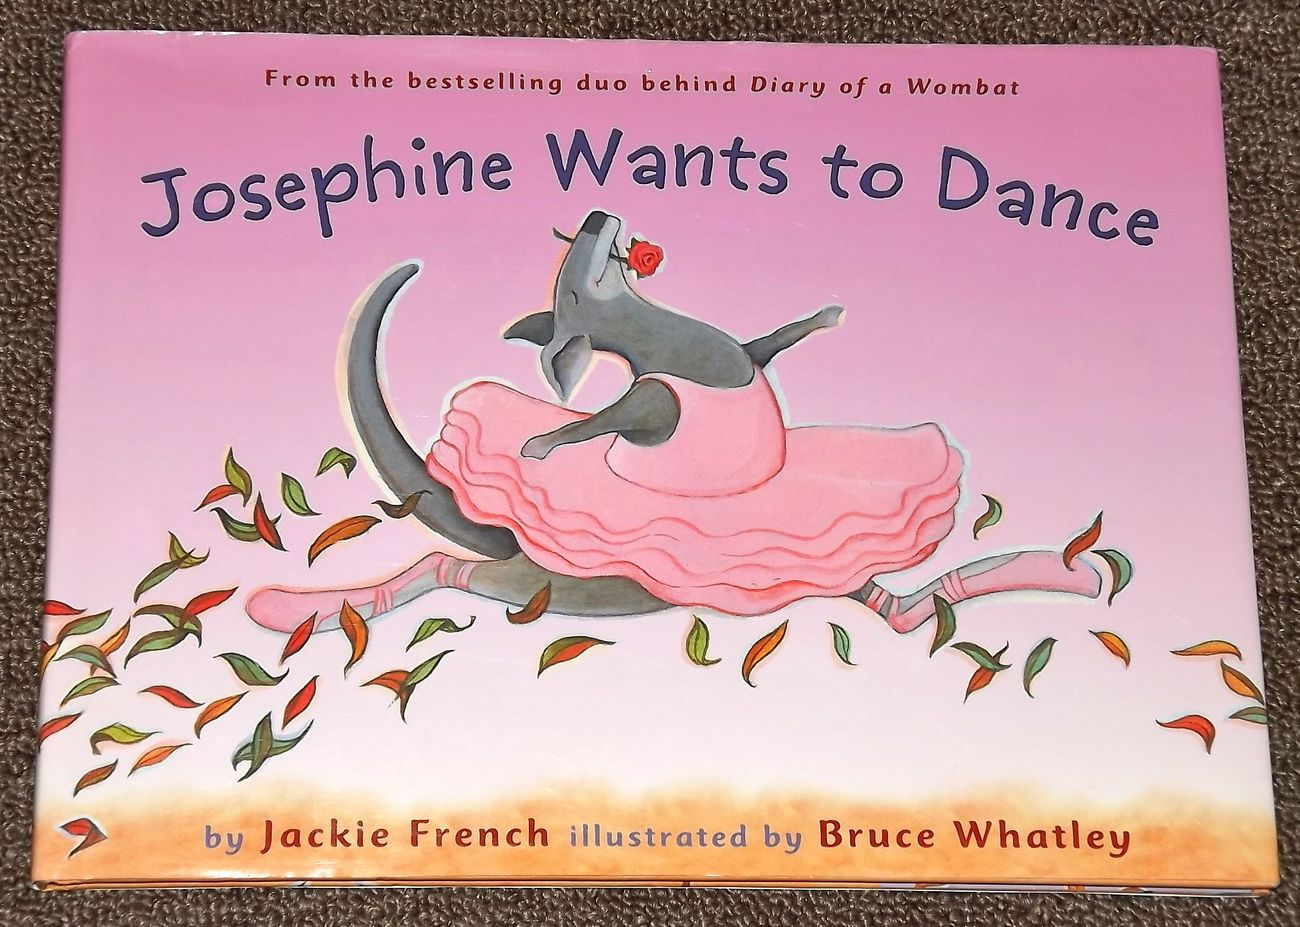 Josephine Wants to Dance by Jackie French and Bruce Whatley